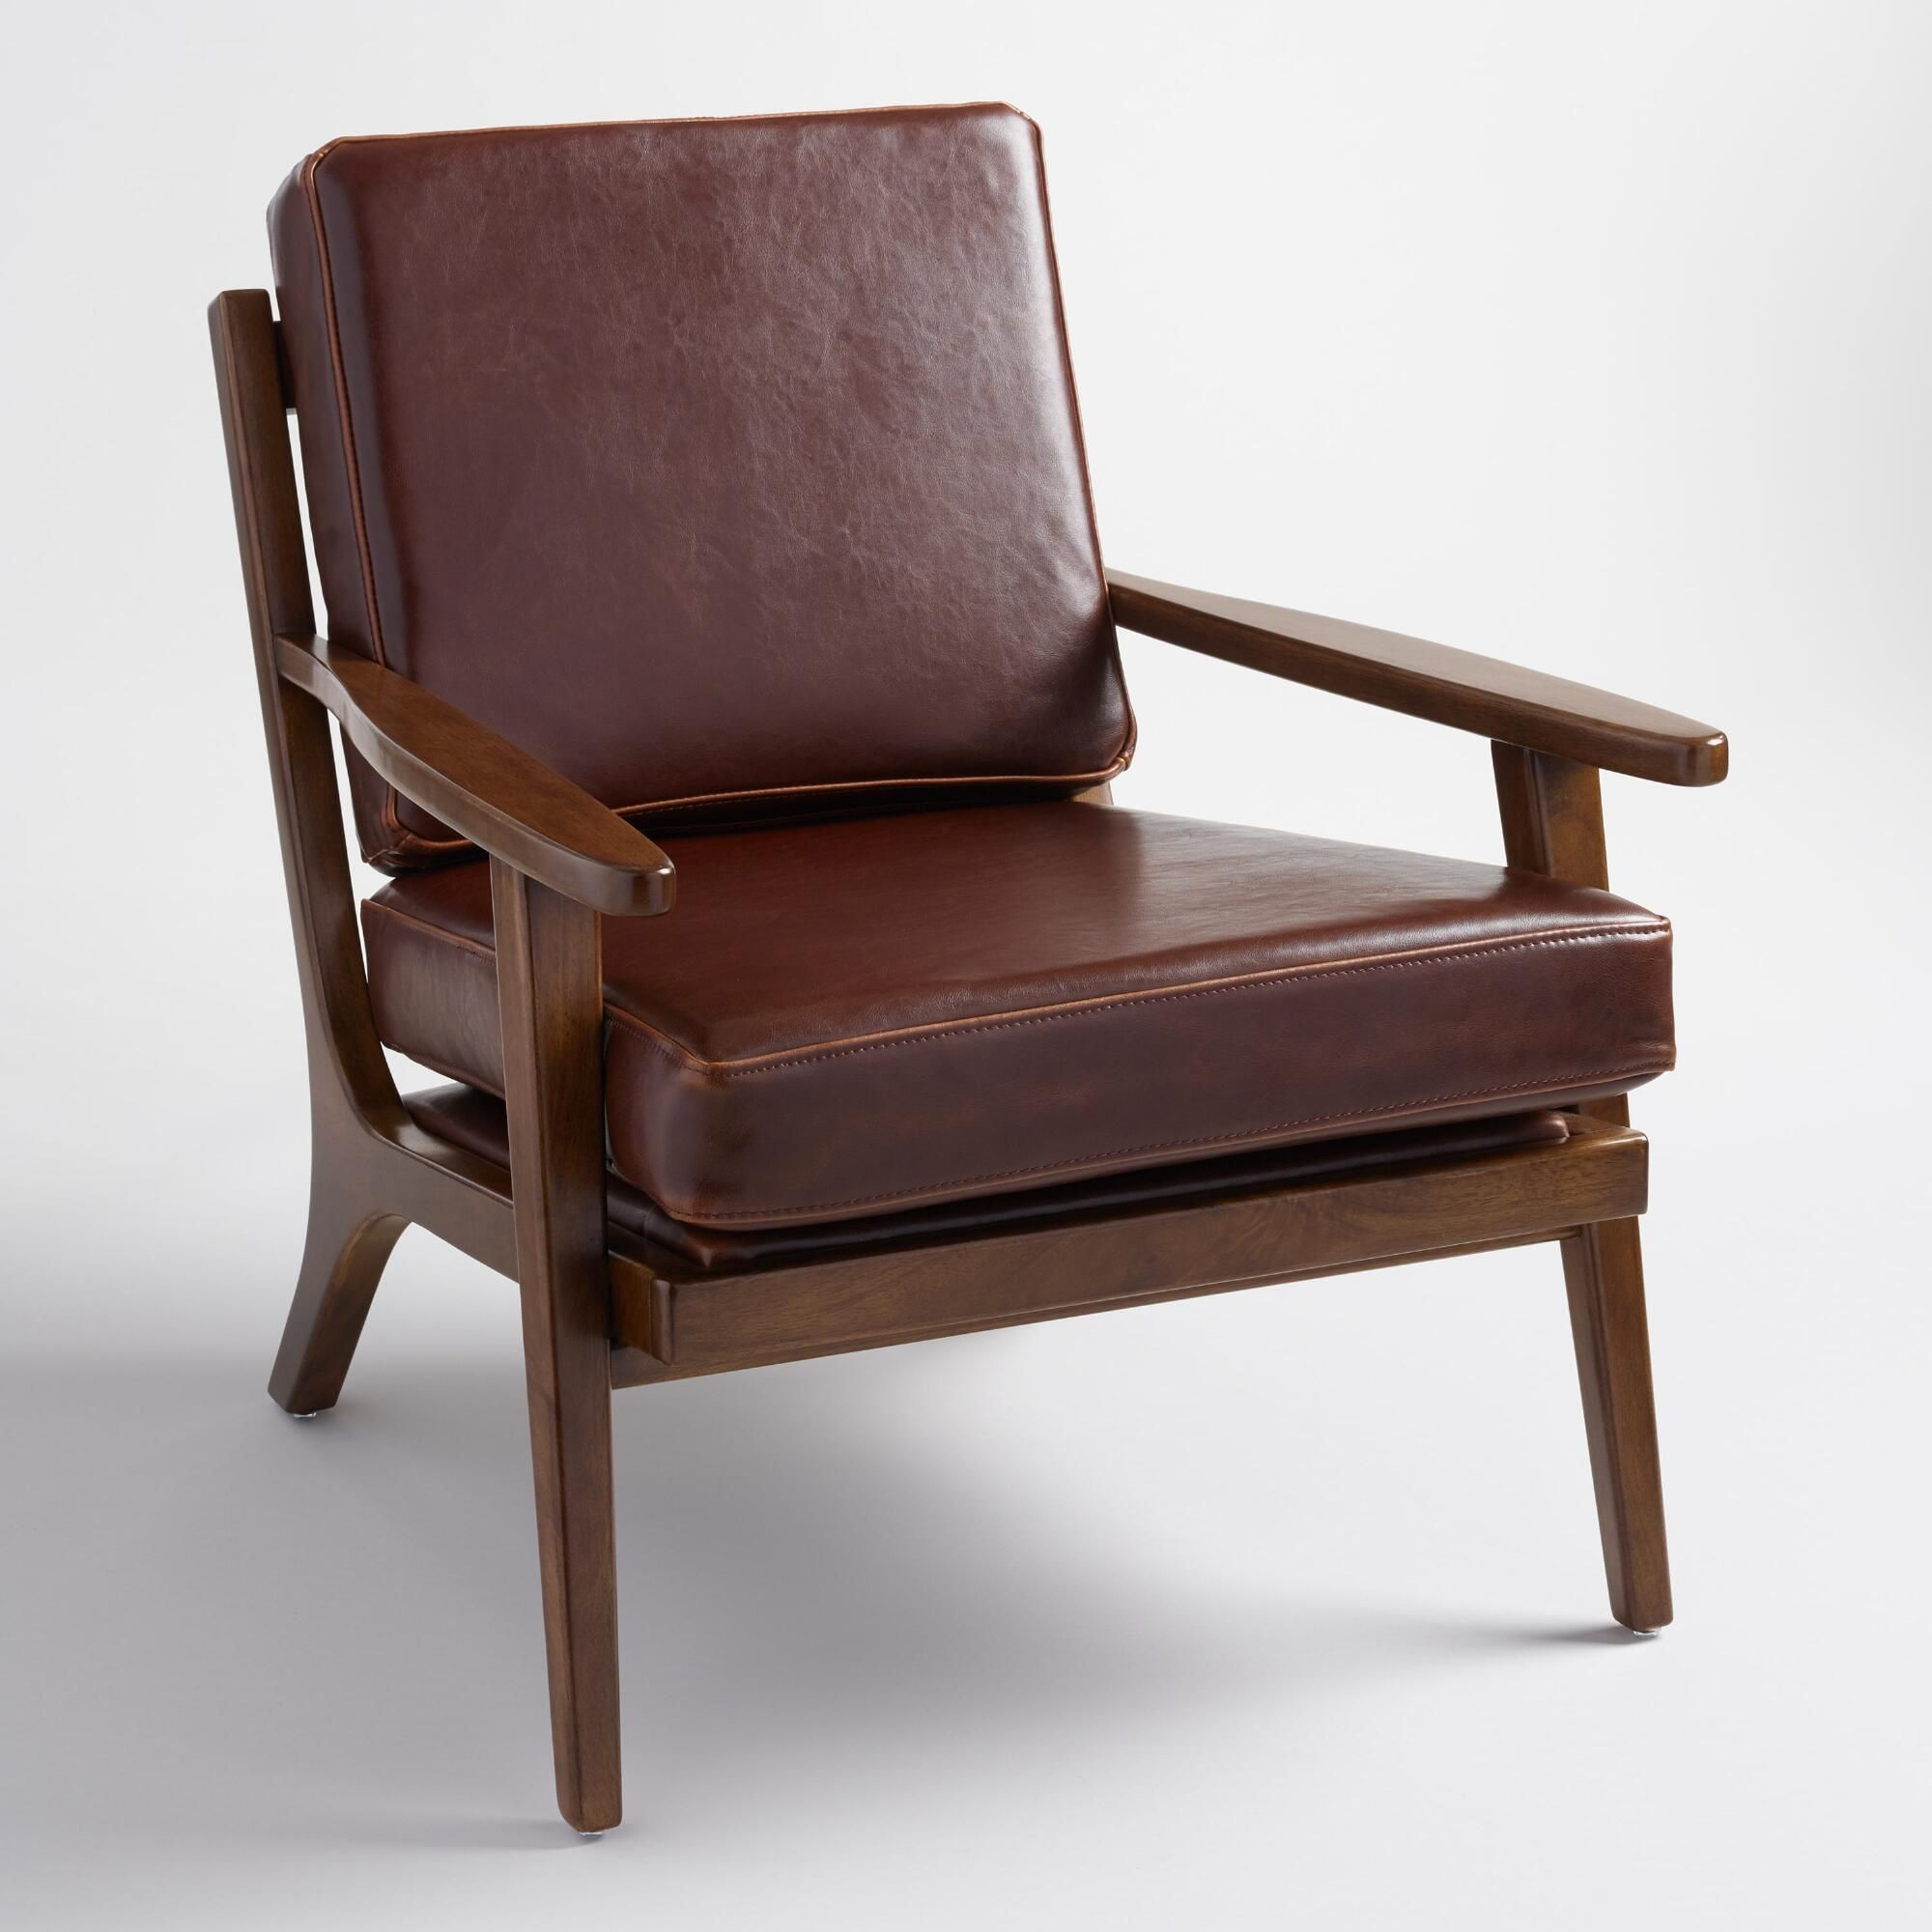 Charmant Whiskey Bi Cast Leather Xander Armchair: Brown By World Market